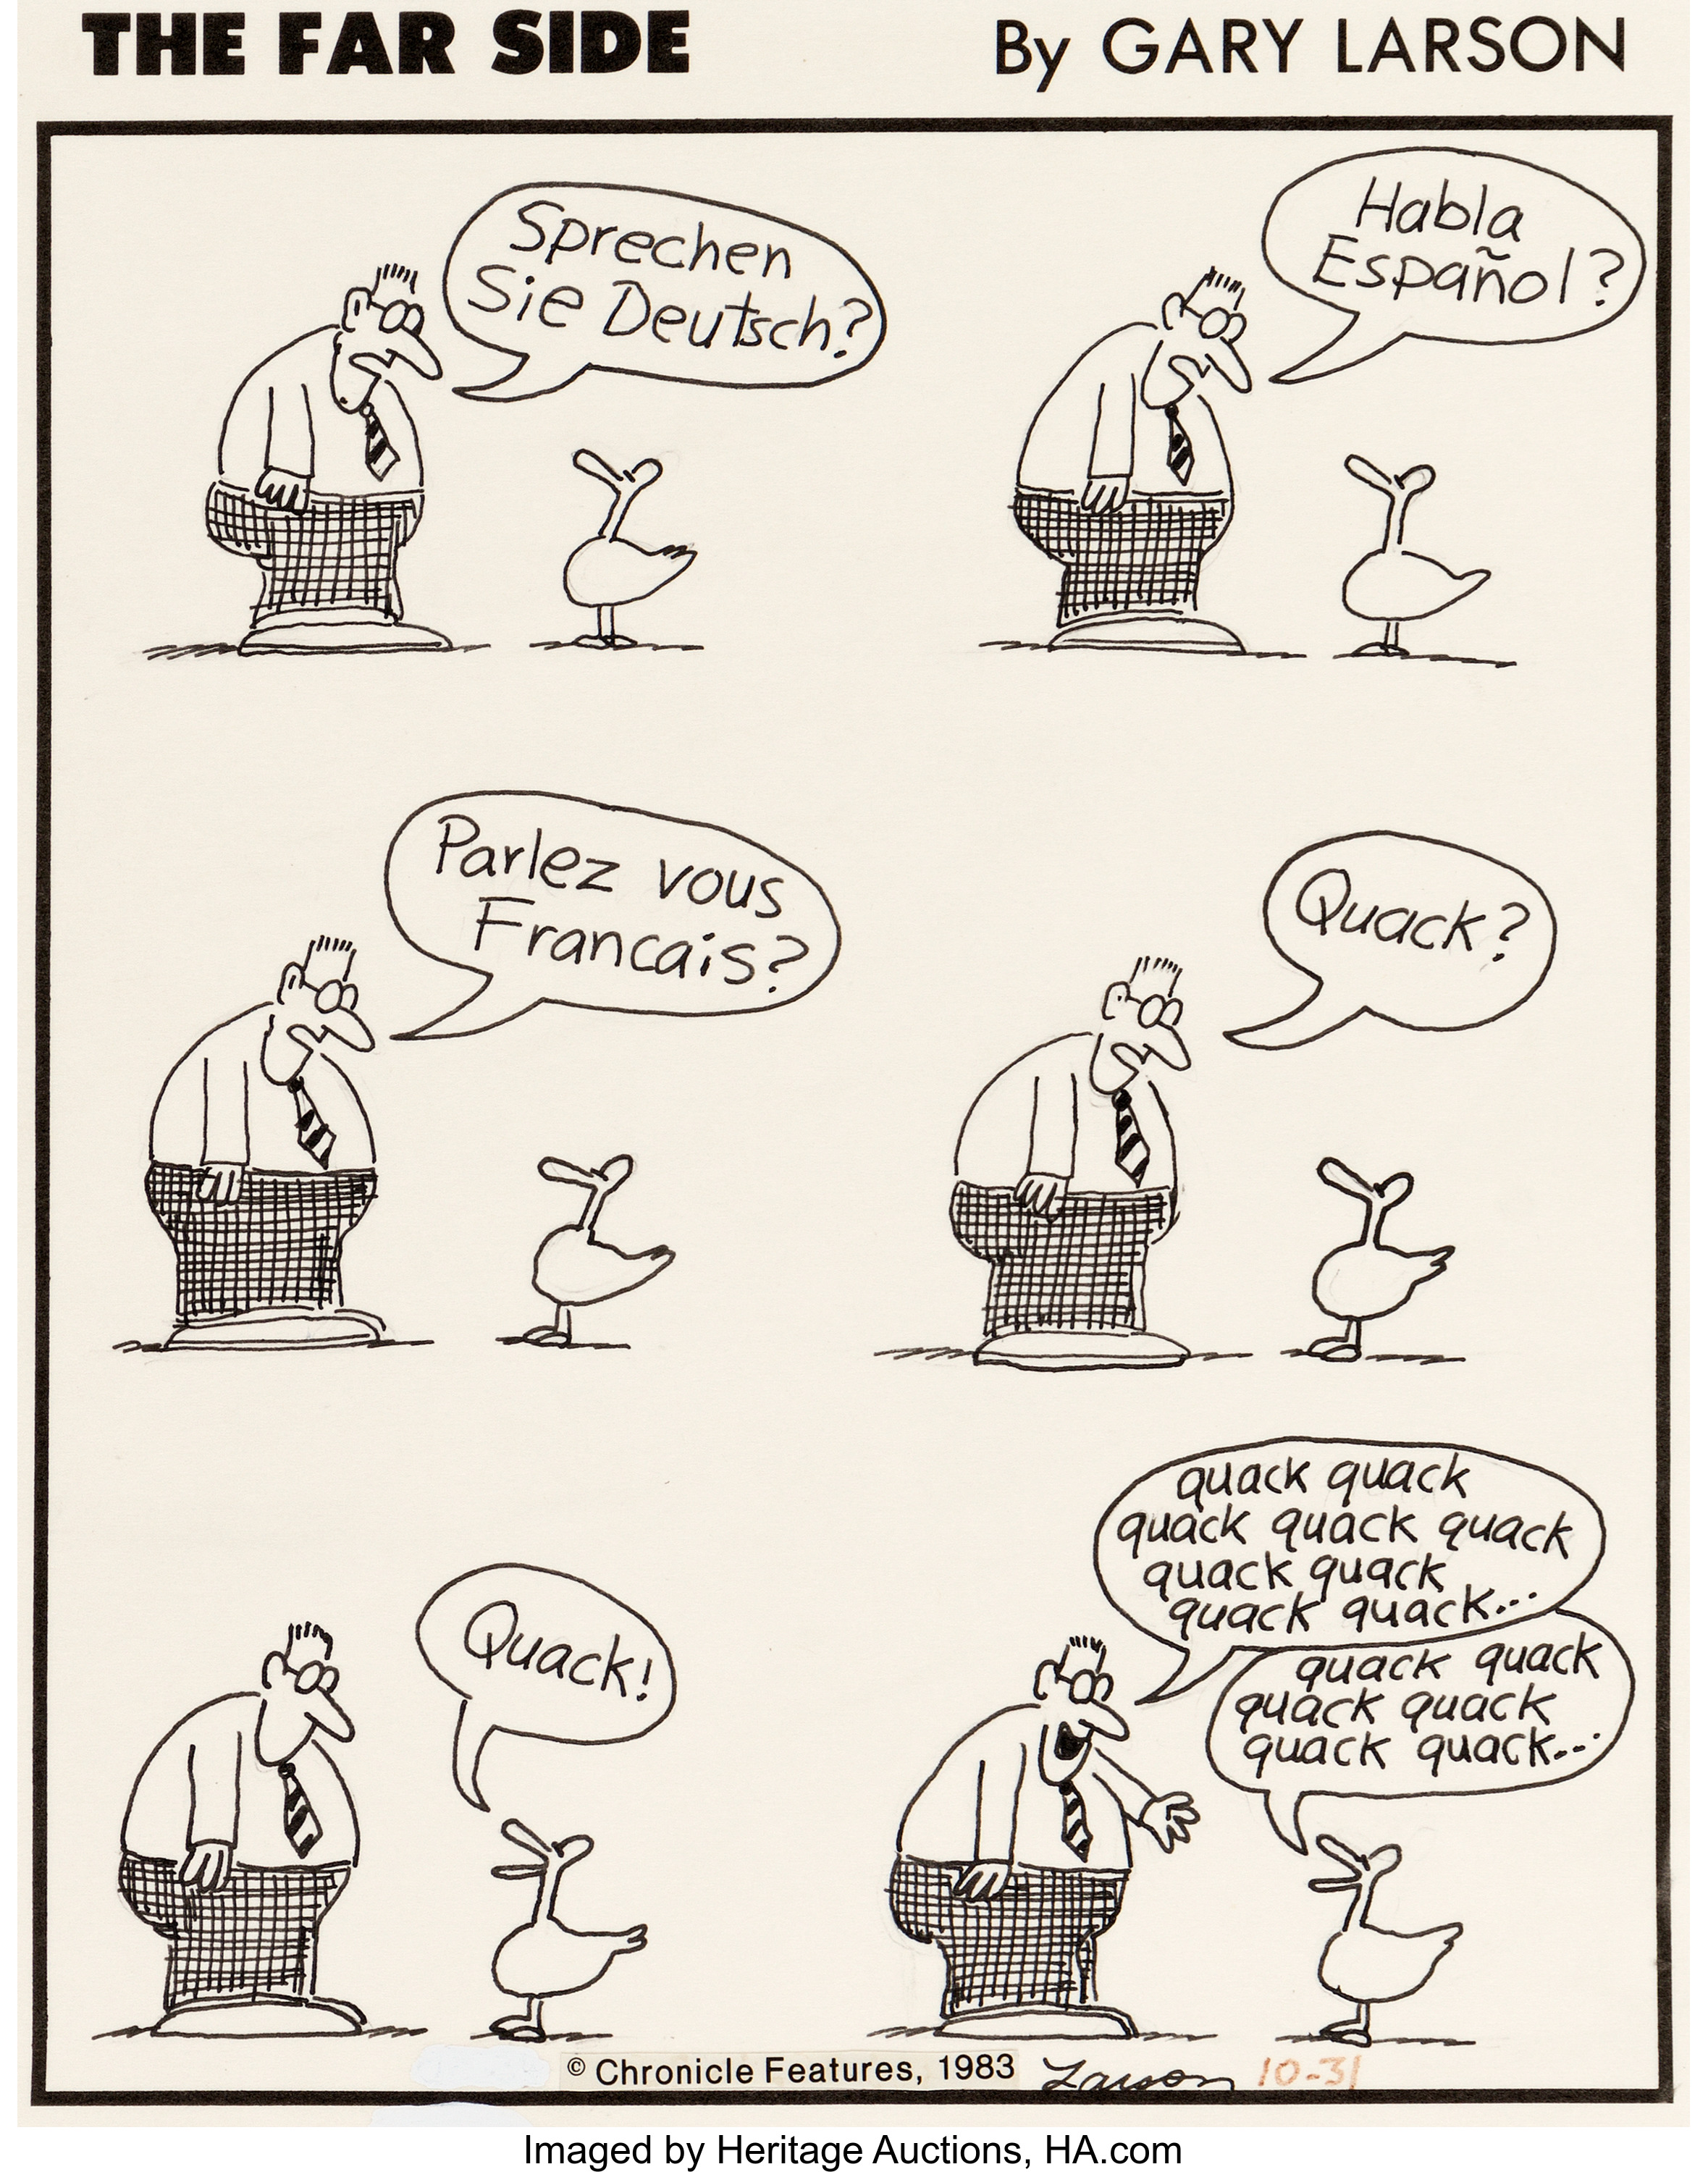 An original panel of comic strip art from 1983 for The Far Side, signed by cartoonist Gary Larson and dated 10-31.